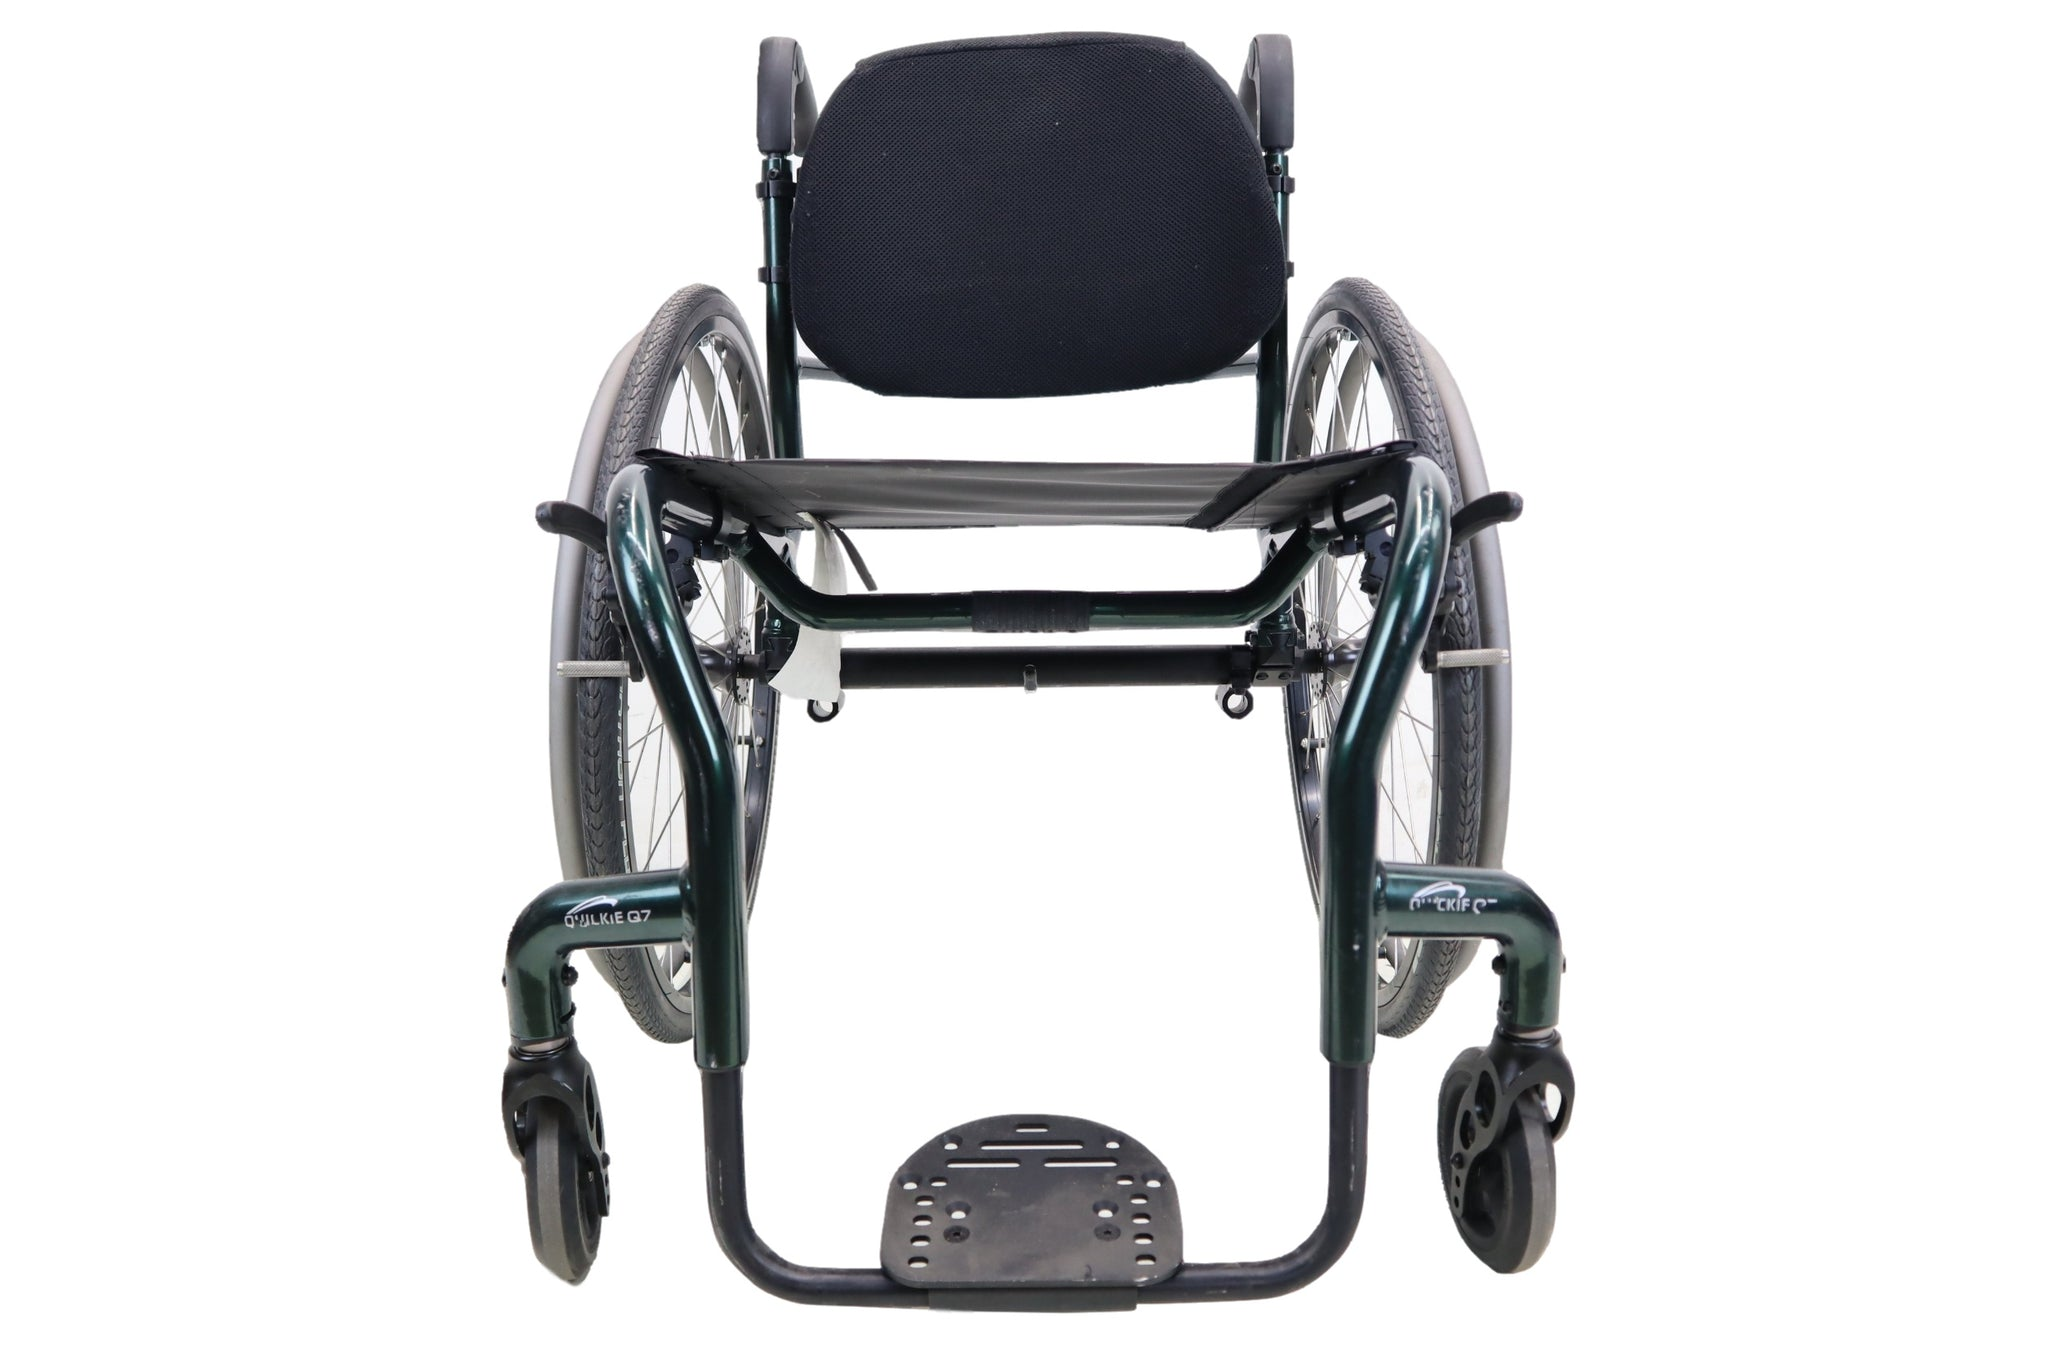 Sunrise Medical Quickie Q7 Lightweight Manual Wheelchair | Rigid Frame